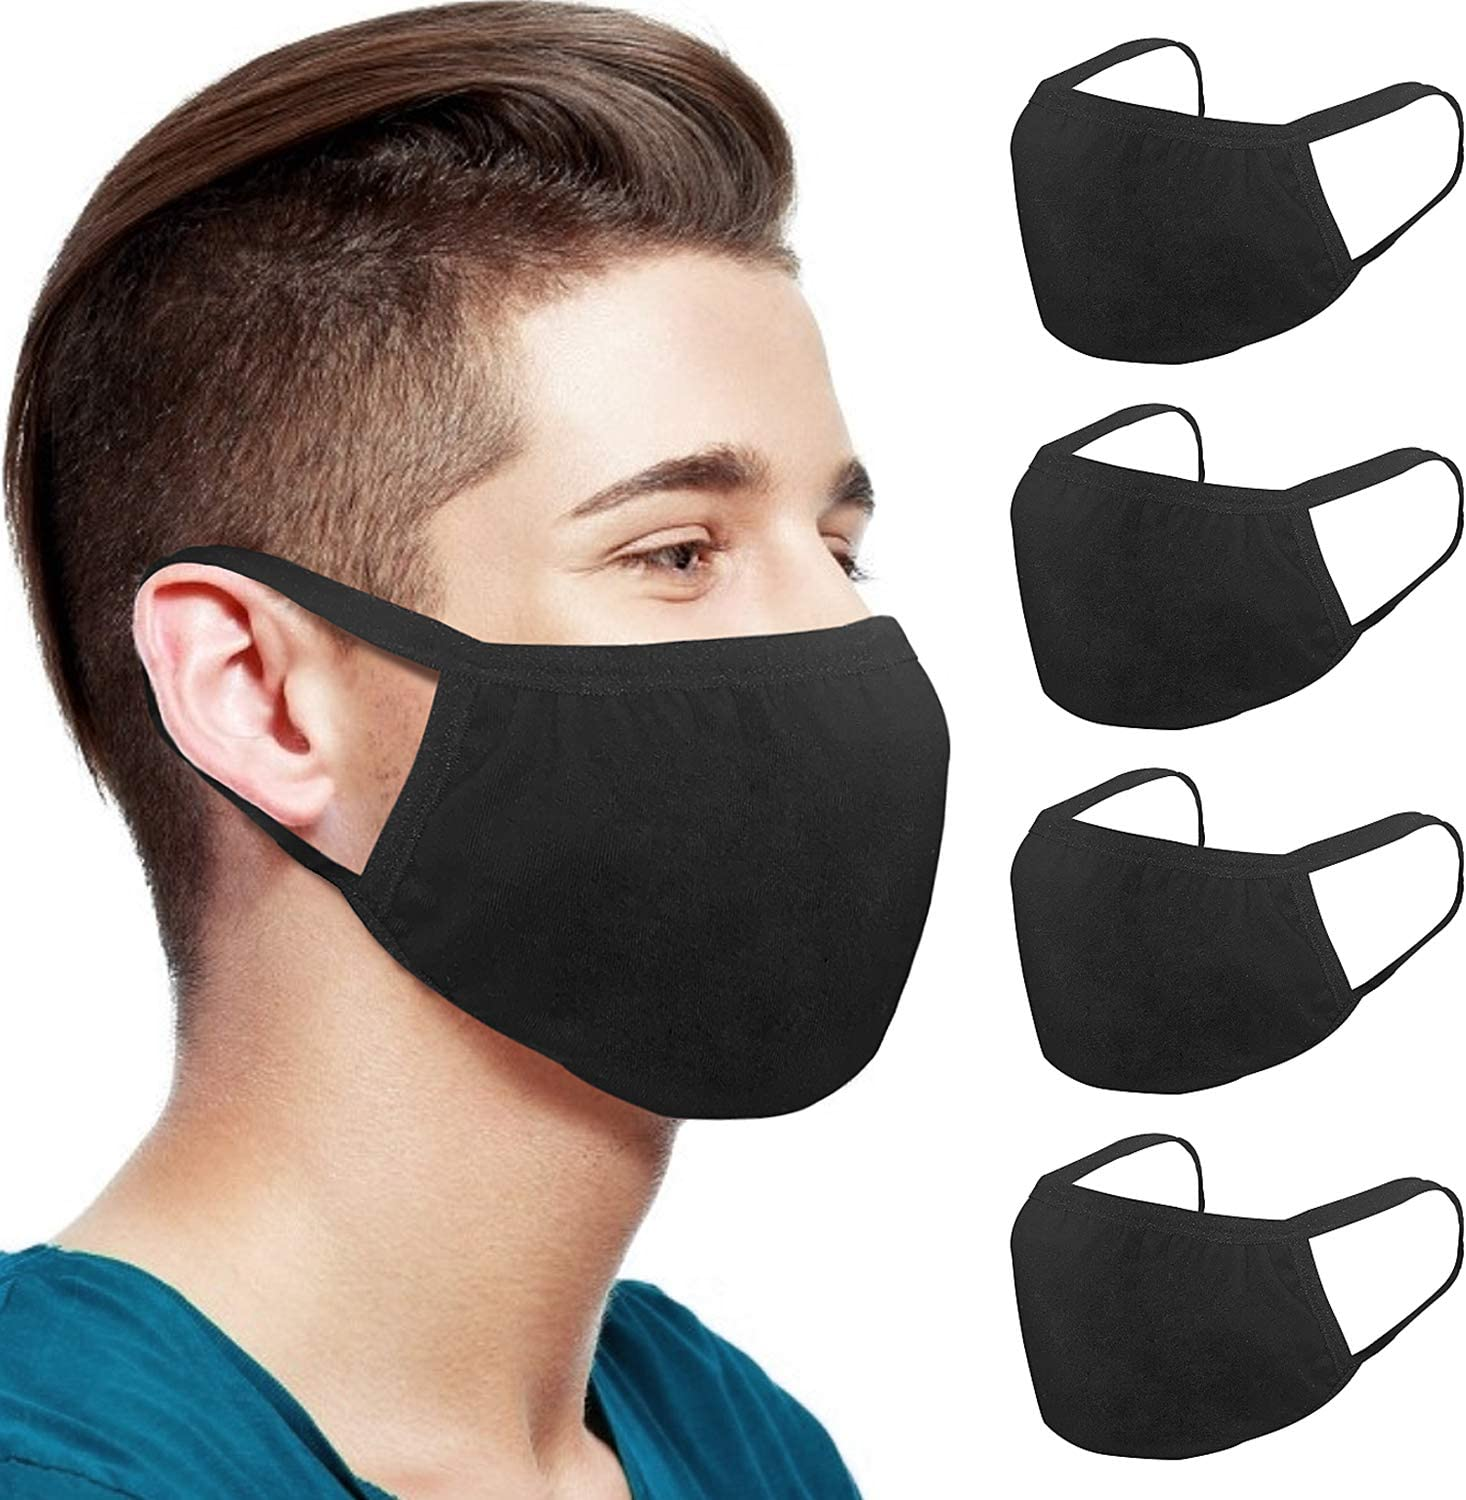 2 Pack of Reusable Dust Face Protection Unisex Mouth Cover Adjustable Breathable Dustproof Washable with 4 PCS Replaceme